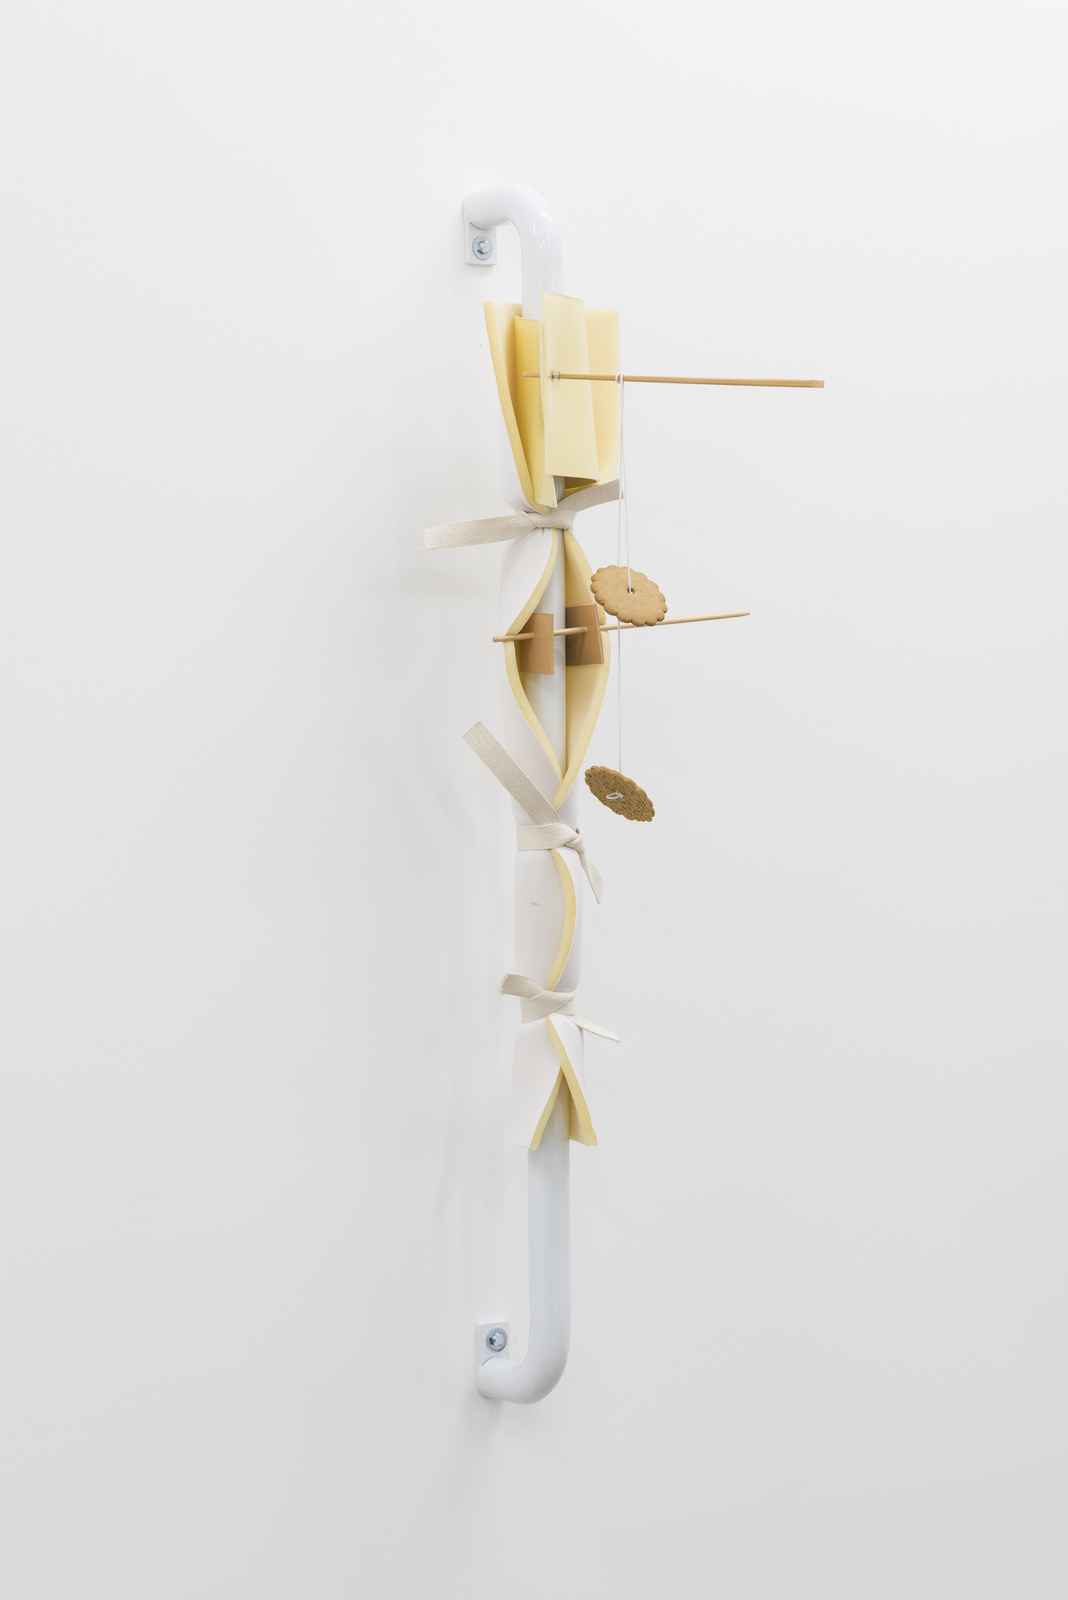 Vanessa Safavi, No Omelette Without Breaking Eggs (Holding Substitute IV), 2016 (3)